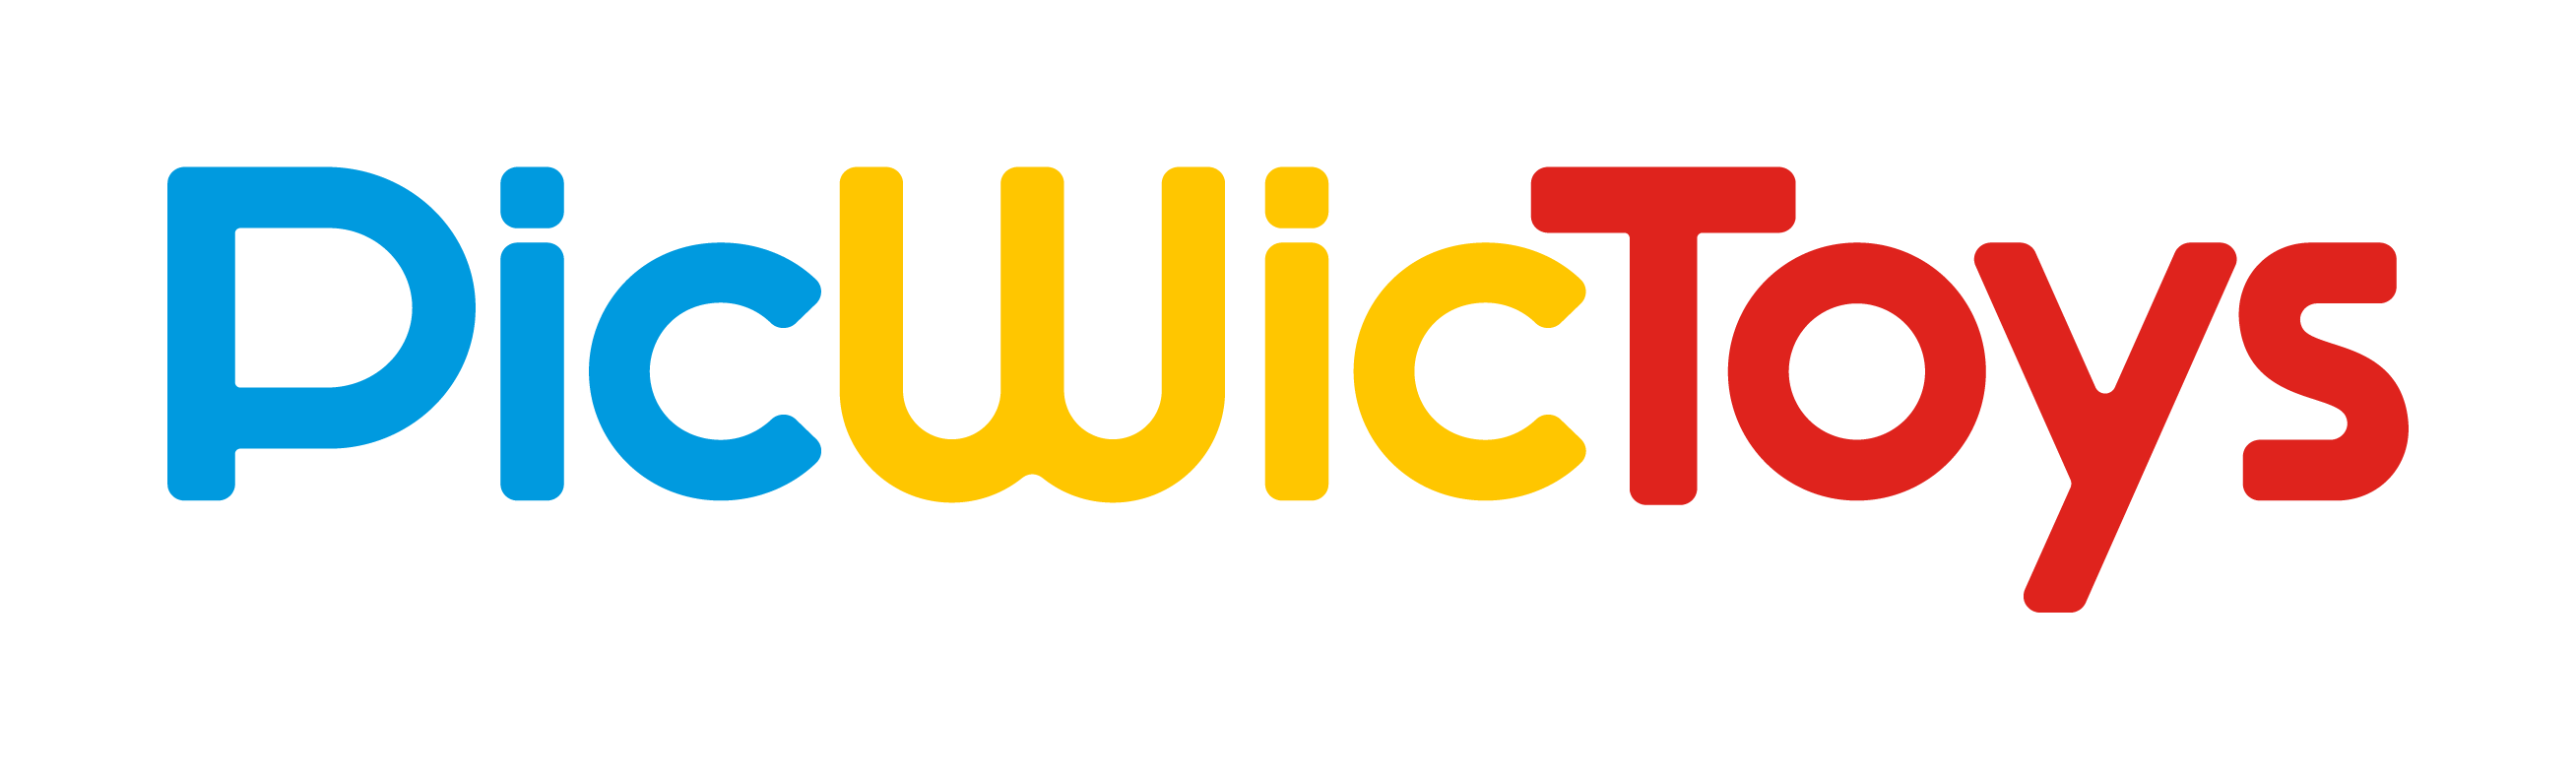 picwictoys-logo.png